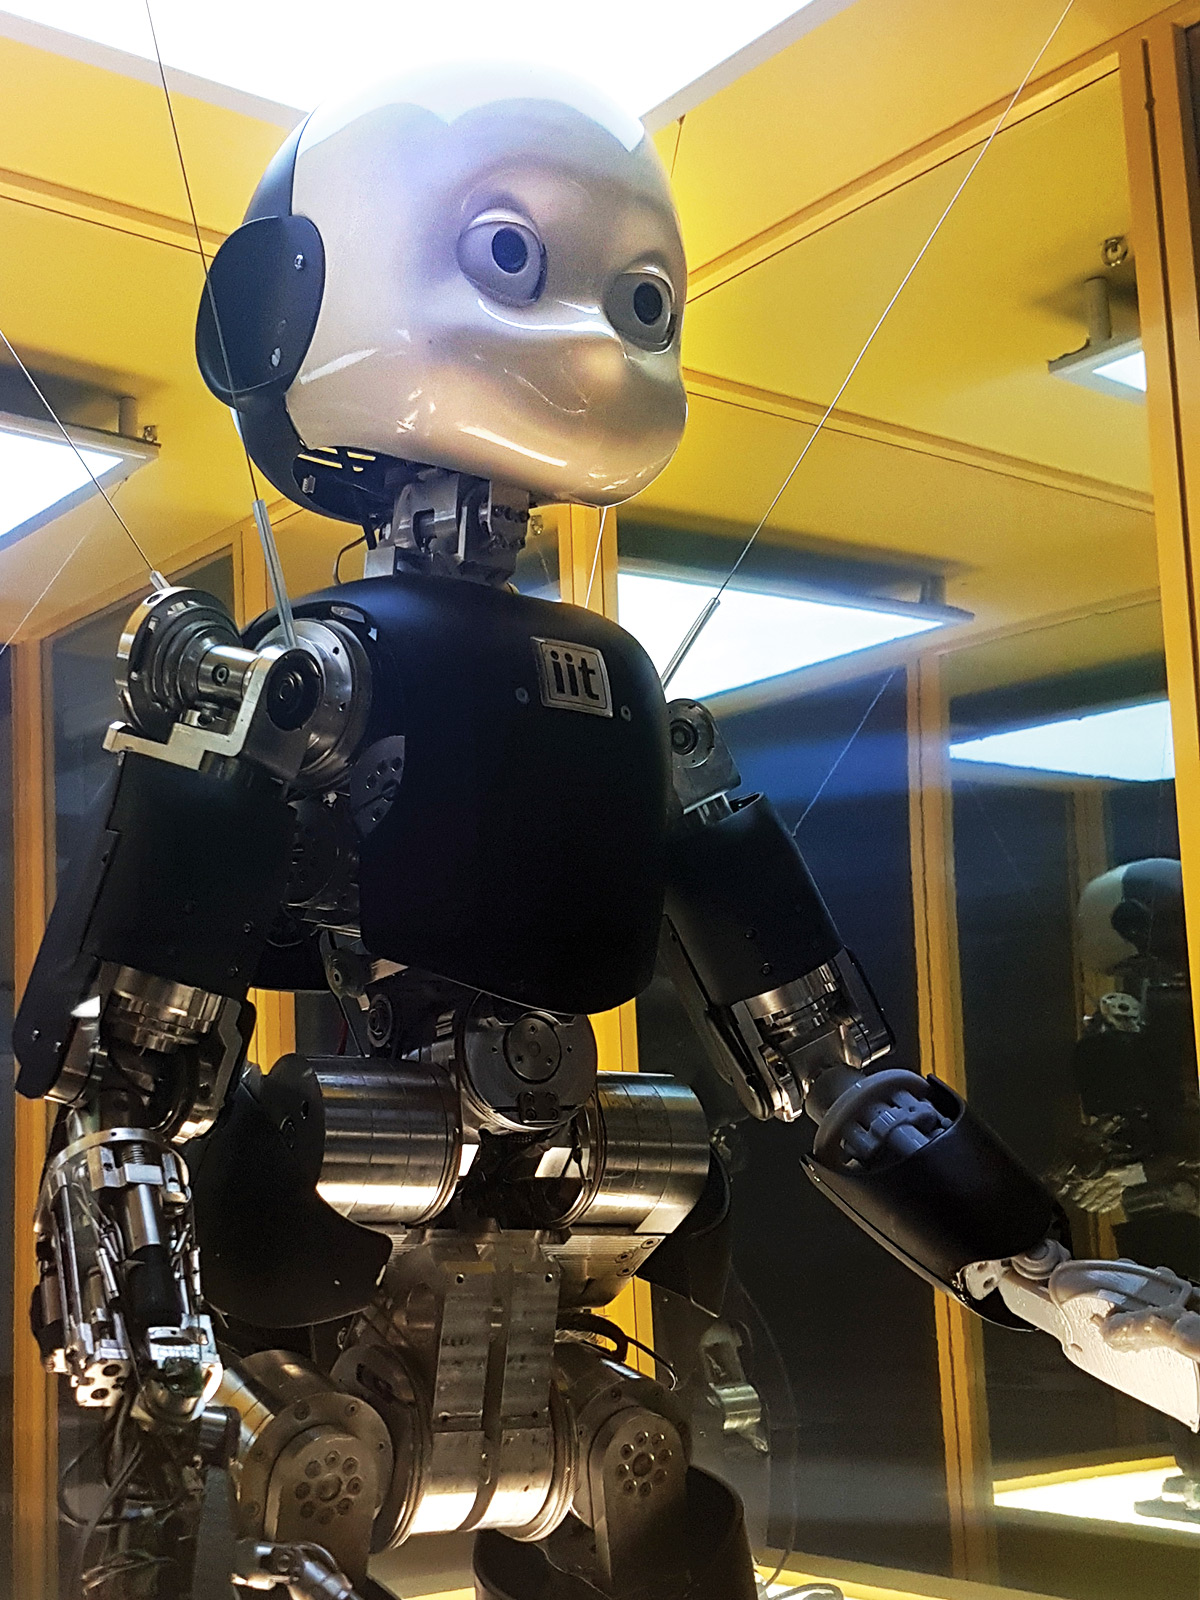 iCub, the robot developed by the Italian Institute of Technology